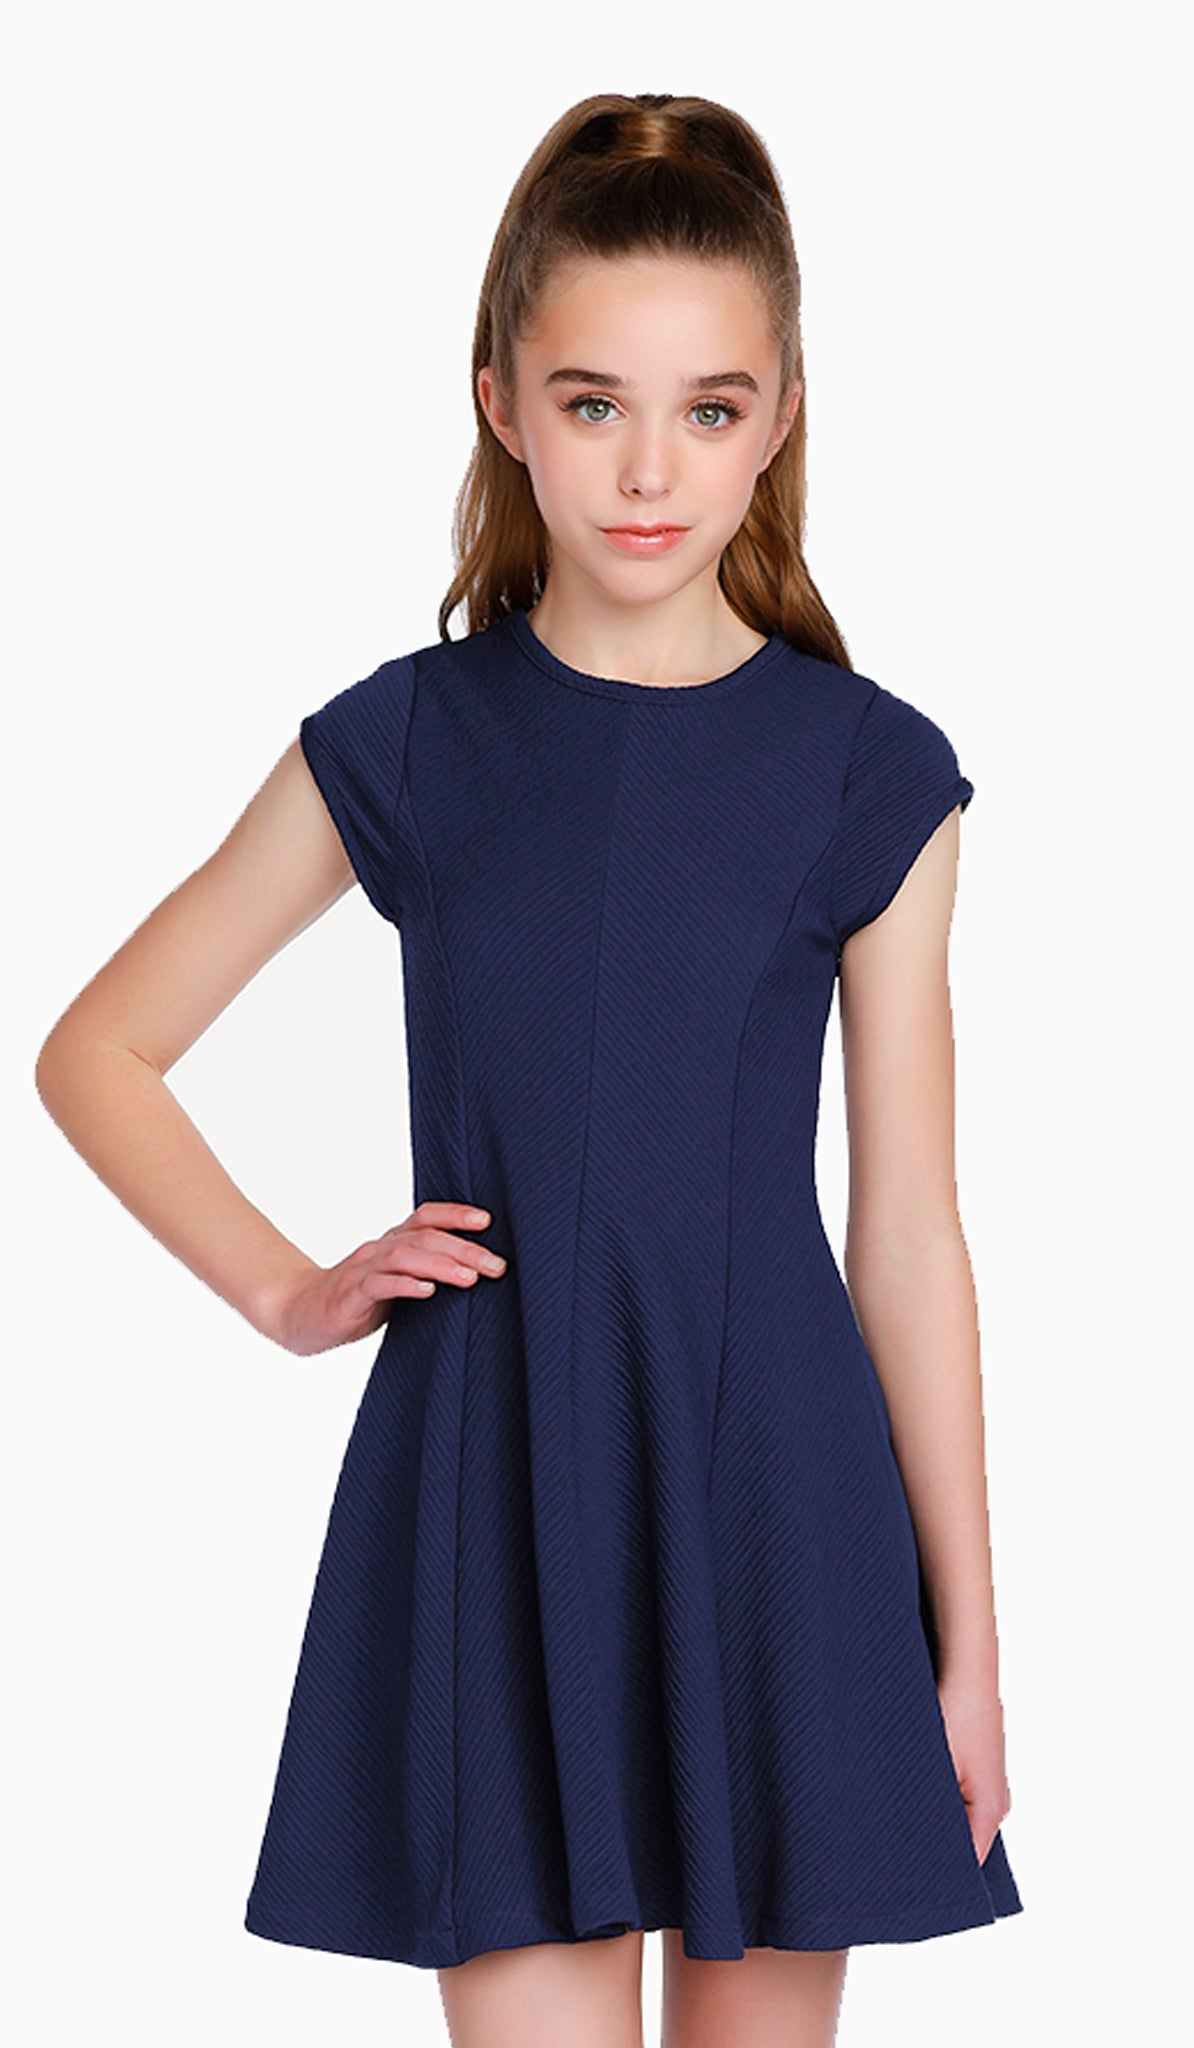 THE SANDRA DRESS - Sallymiller.com - [variant title] - | Event & Party Dresses for Tween Girls & Juniors | Weddings Dresses, Bat Mitzvah Dresses, Sweet Sixteen Dresses, Graduation Dresses, Birthday Party Dresses, Bar Mitzvah Dresses, Cotillion Dresses